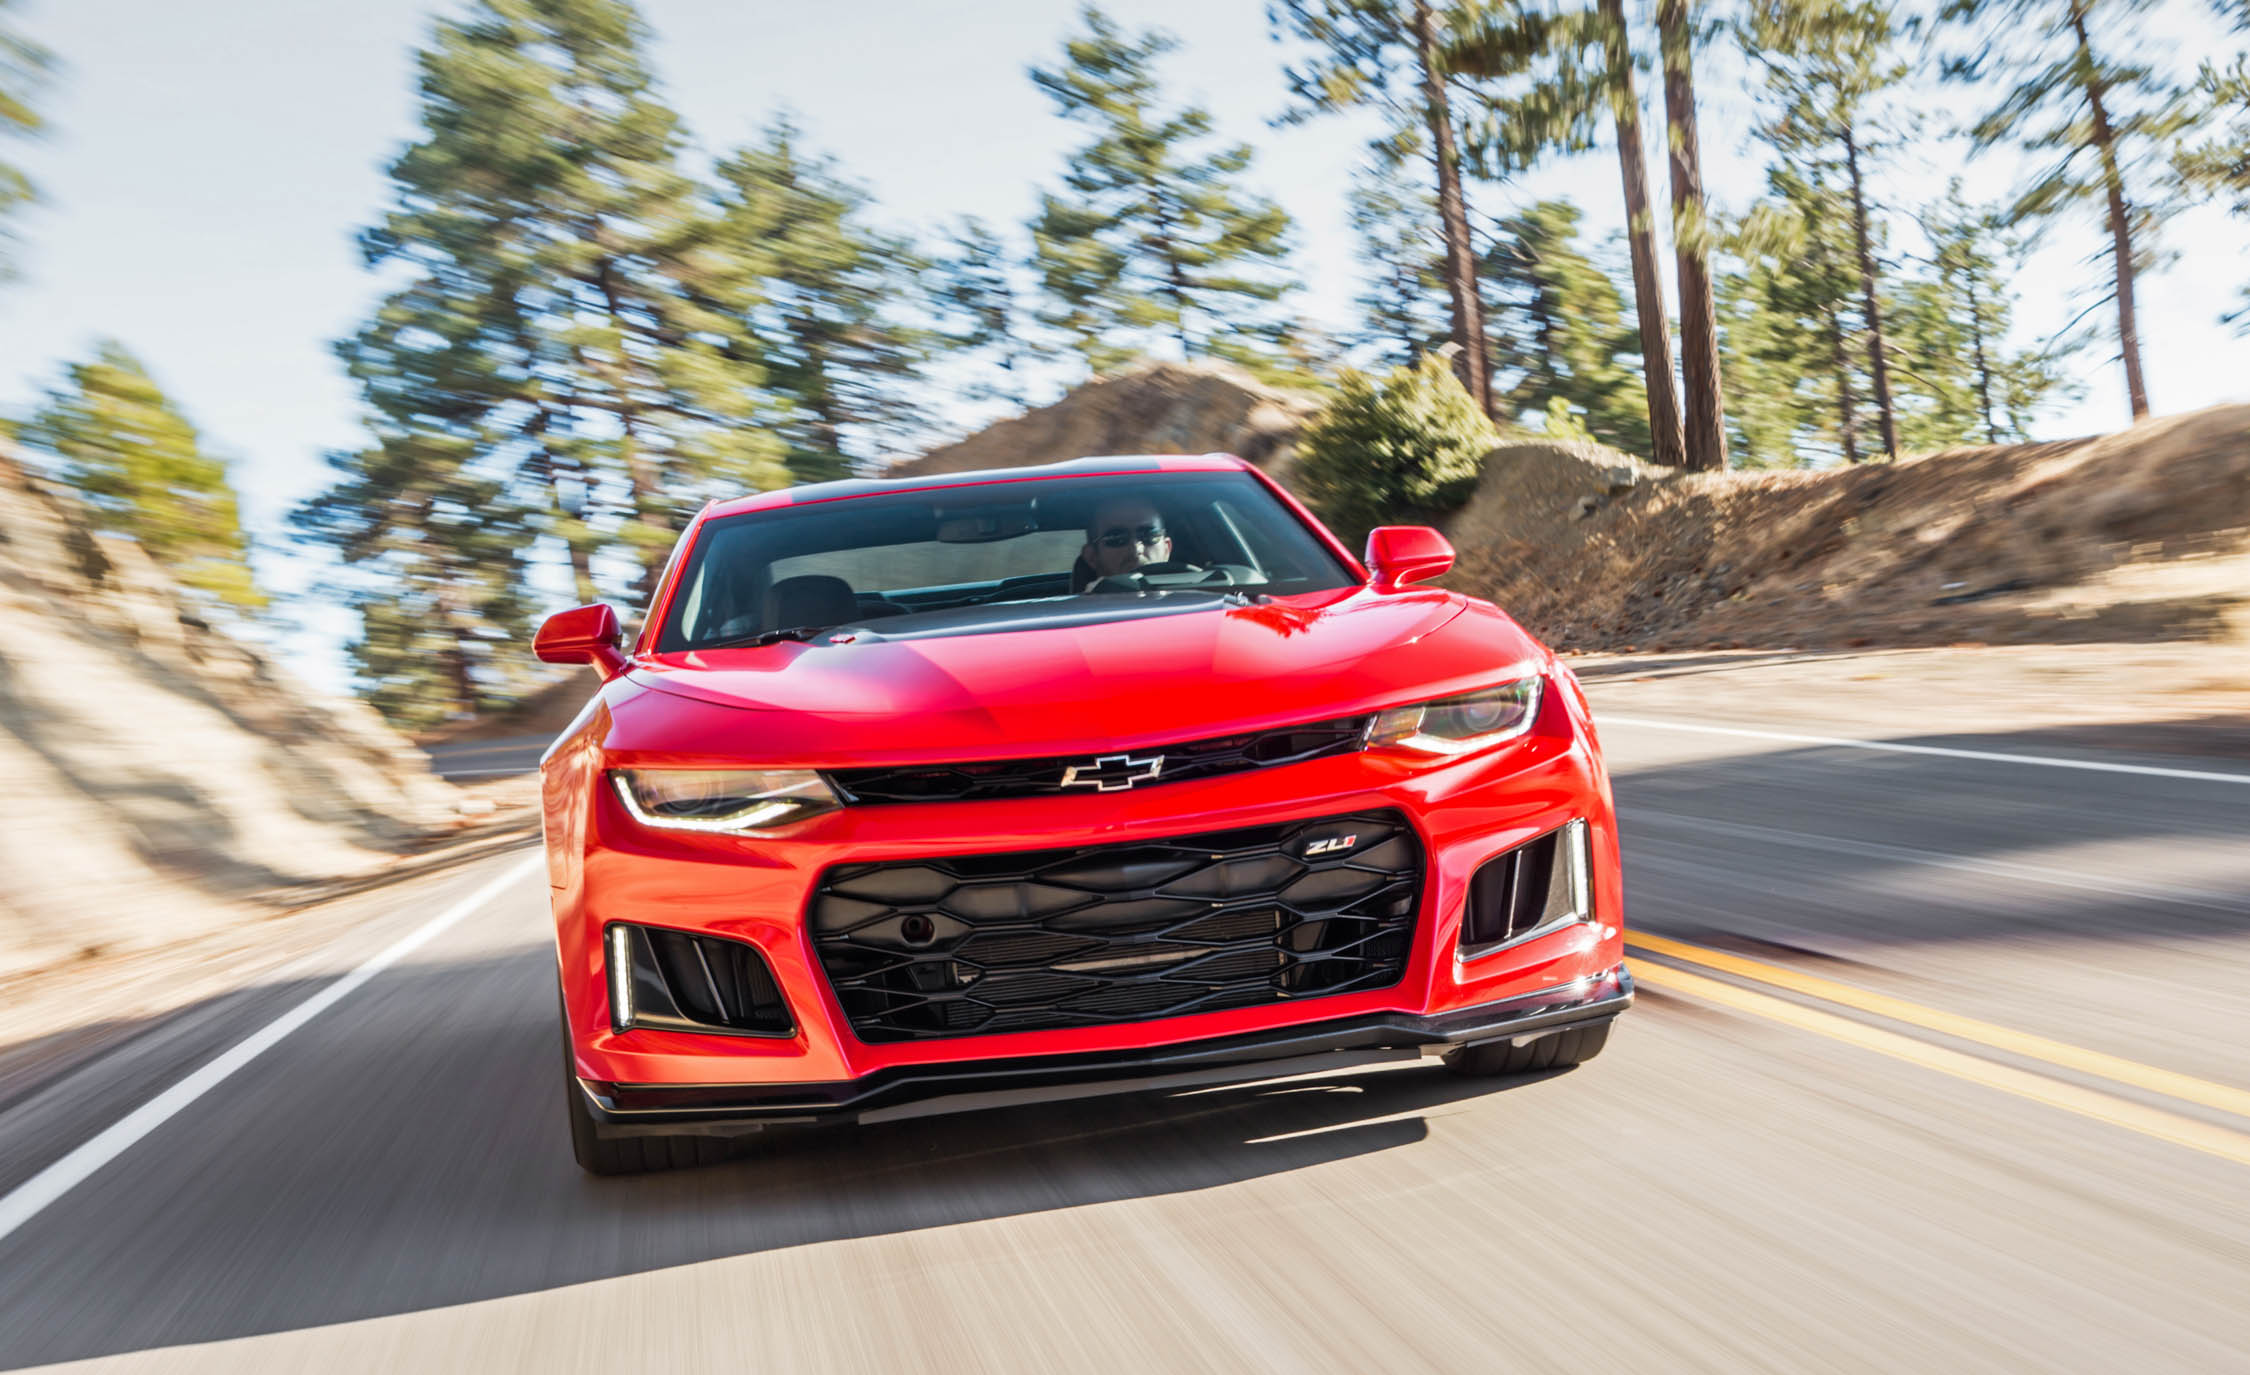 2017 Chevrolet Camaro Zl1 Red Test Drive Front Preview